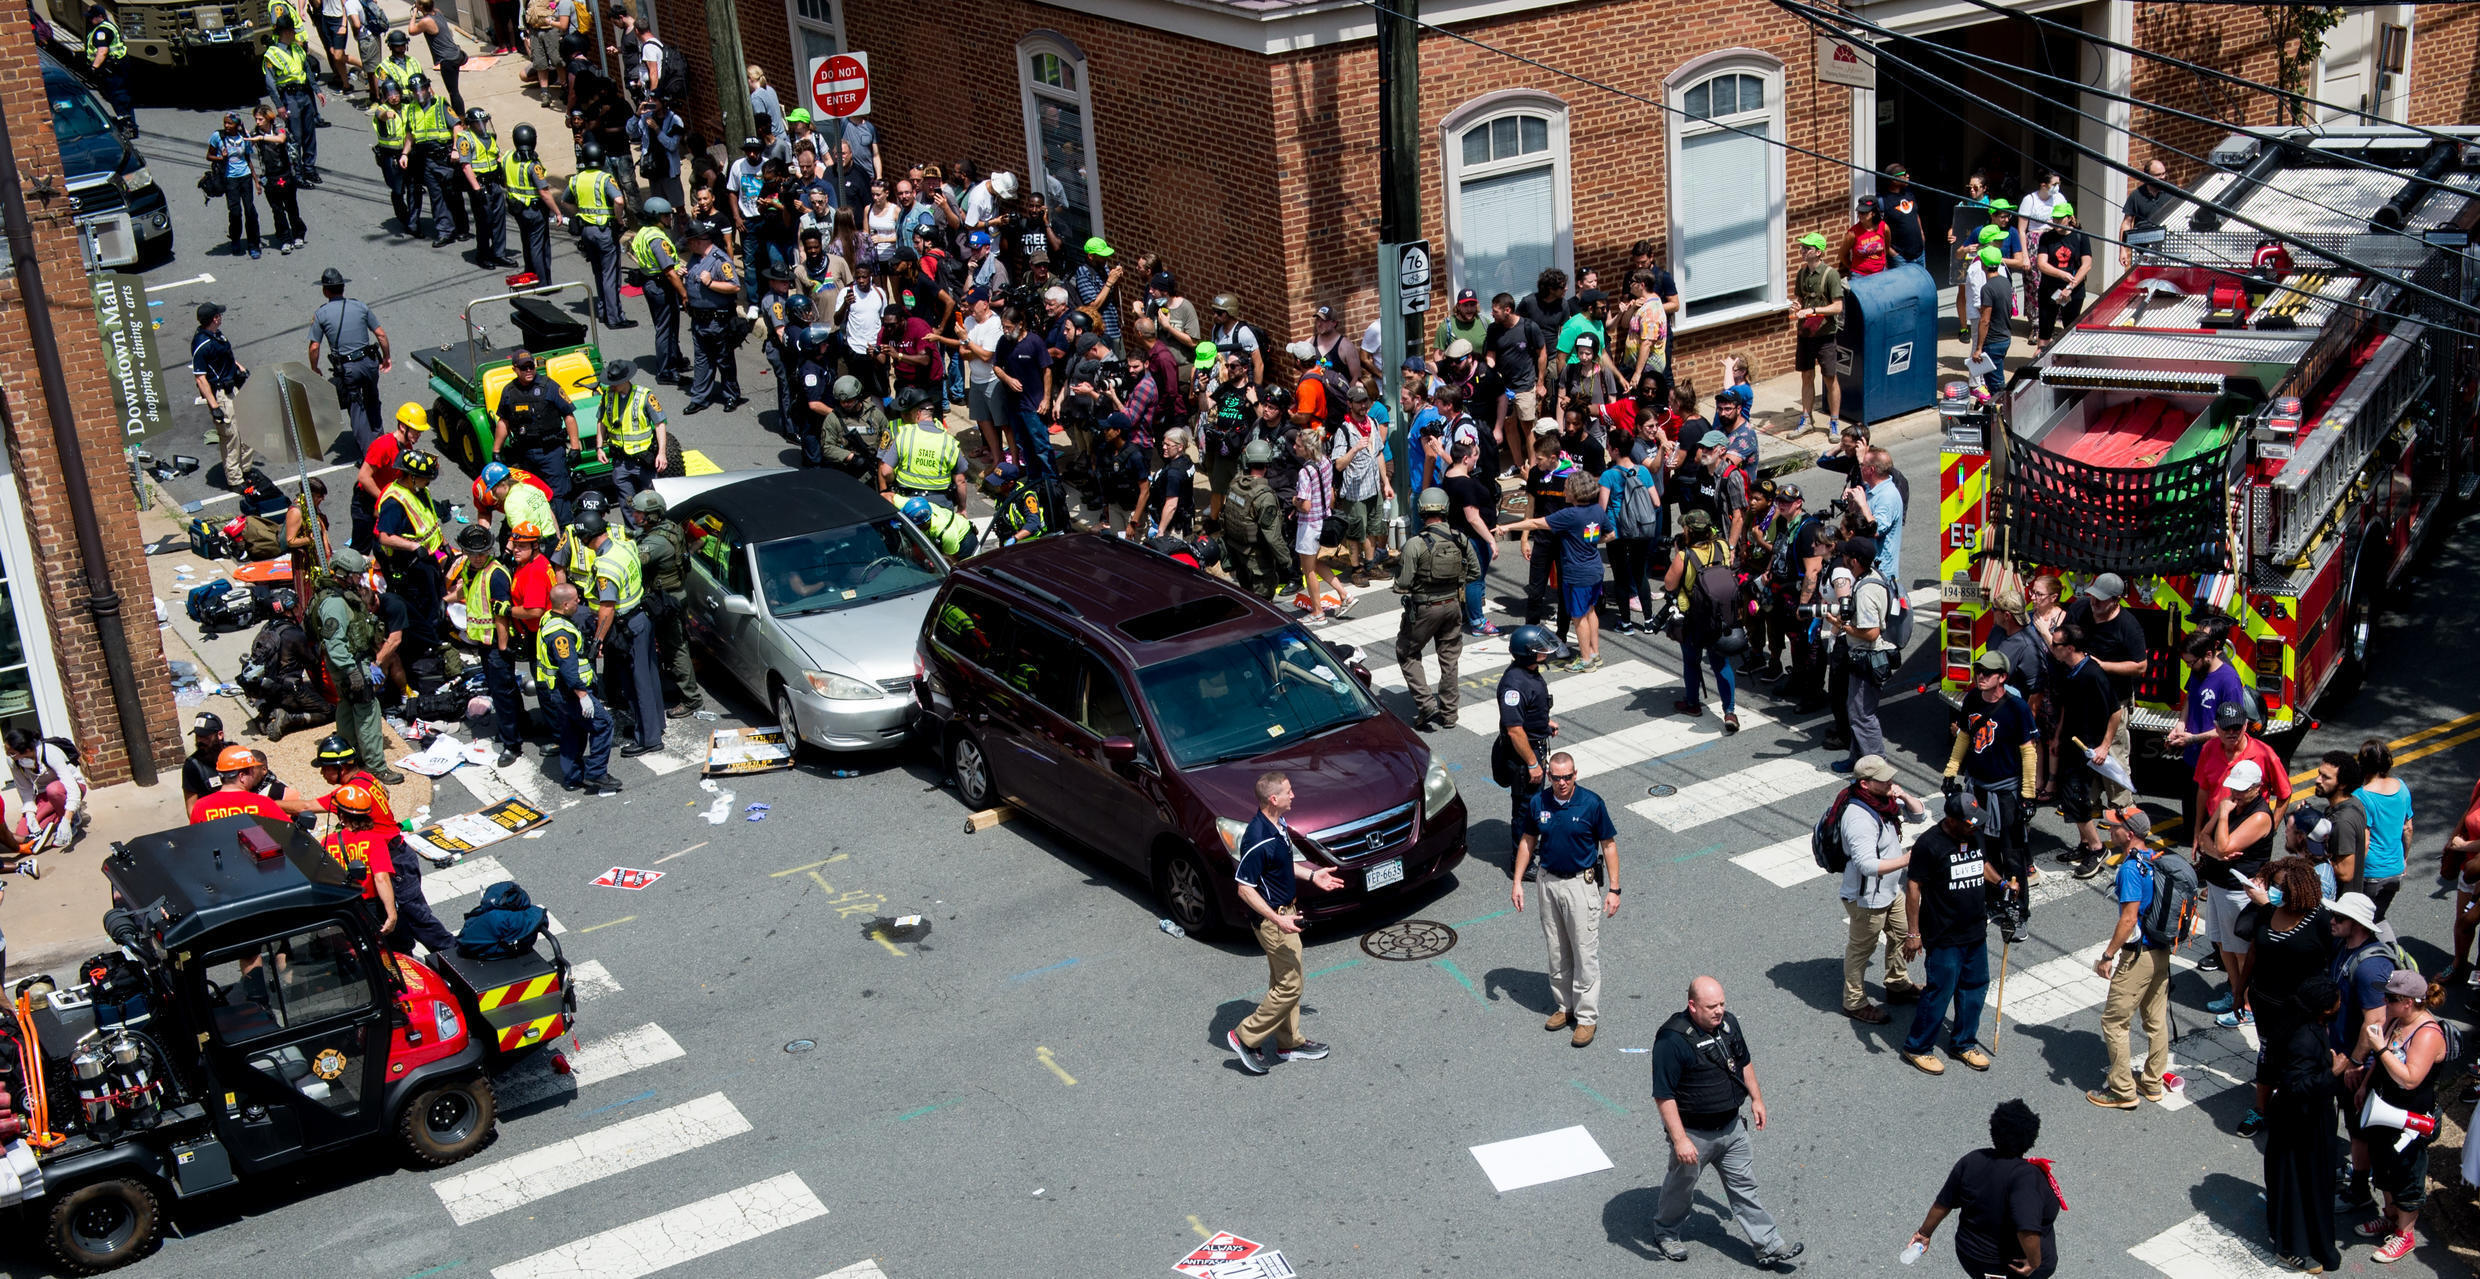 The scene of the Charlottesville attack, August 12, 2017.